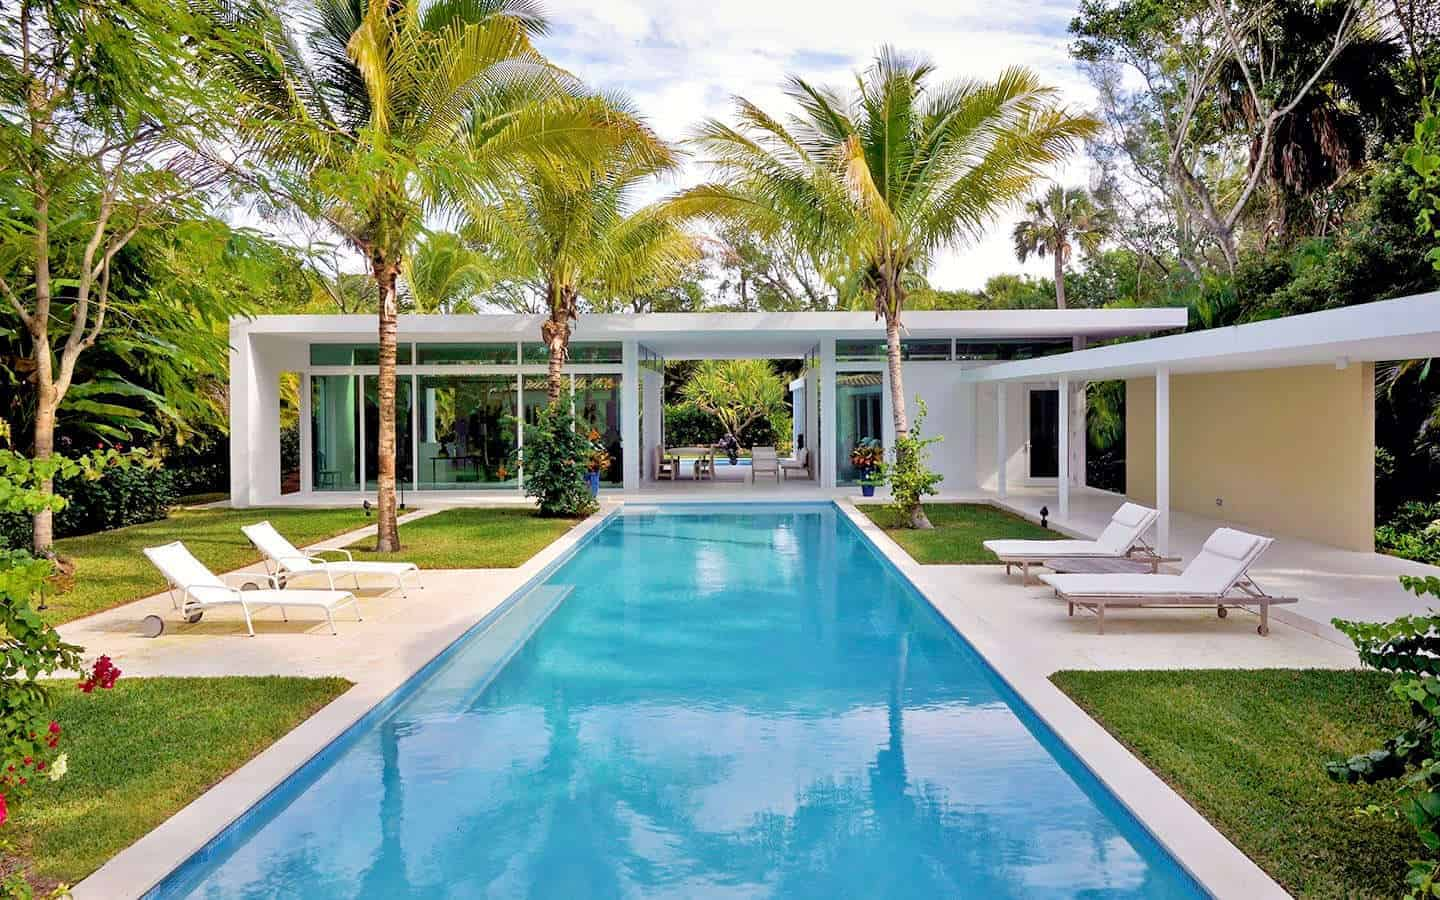 Gomez Road House Expansion Showcases Prestigious Art Collection by Hughes Umbanhowar Architects